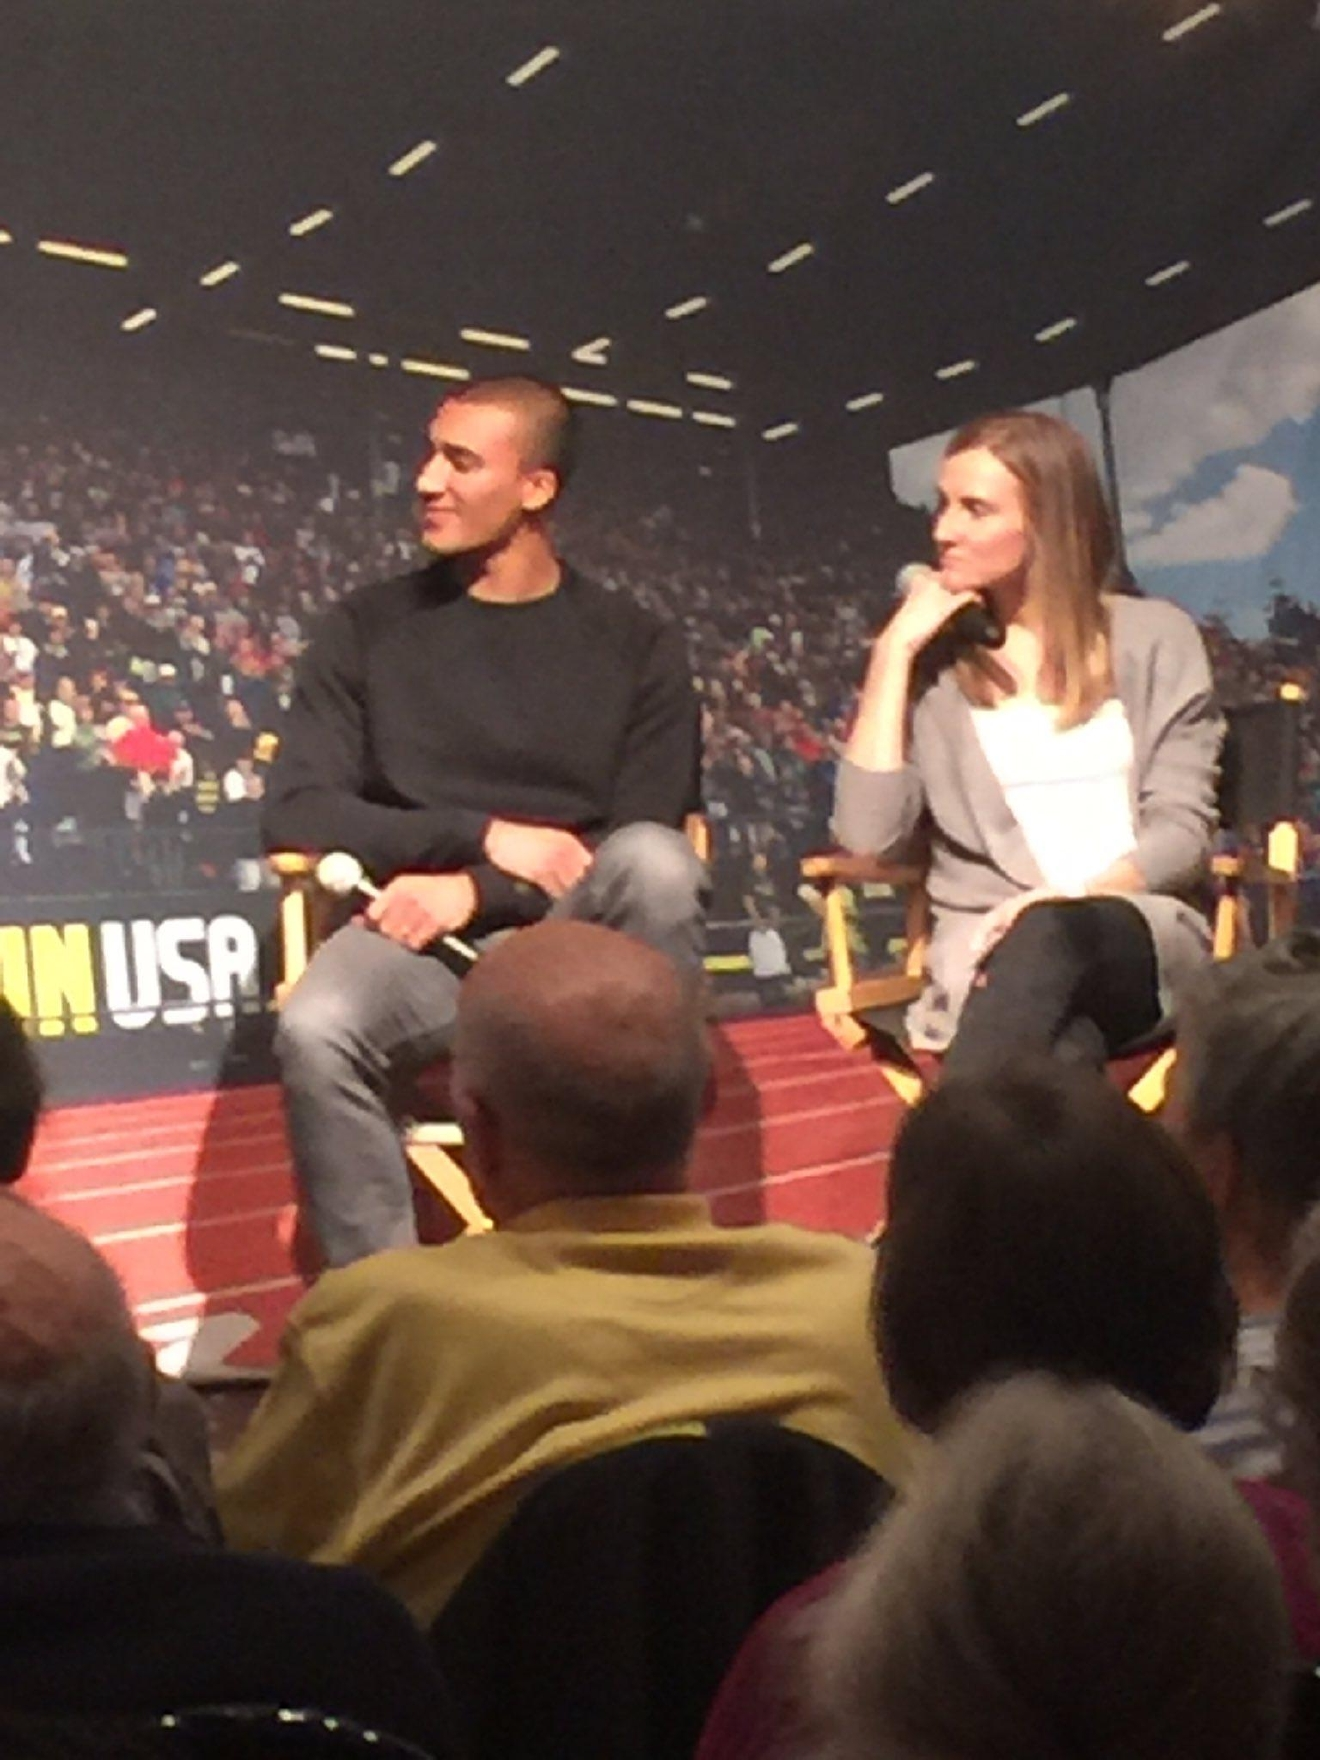 Ashton Eaton and Brianne Theisen Eaton spoke before a crowd at the Feb. 7, 2017 TrackTown Tuesday event. They discussed their plans now that they're retired from track and field. (SBG photo)